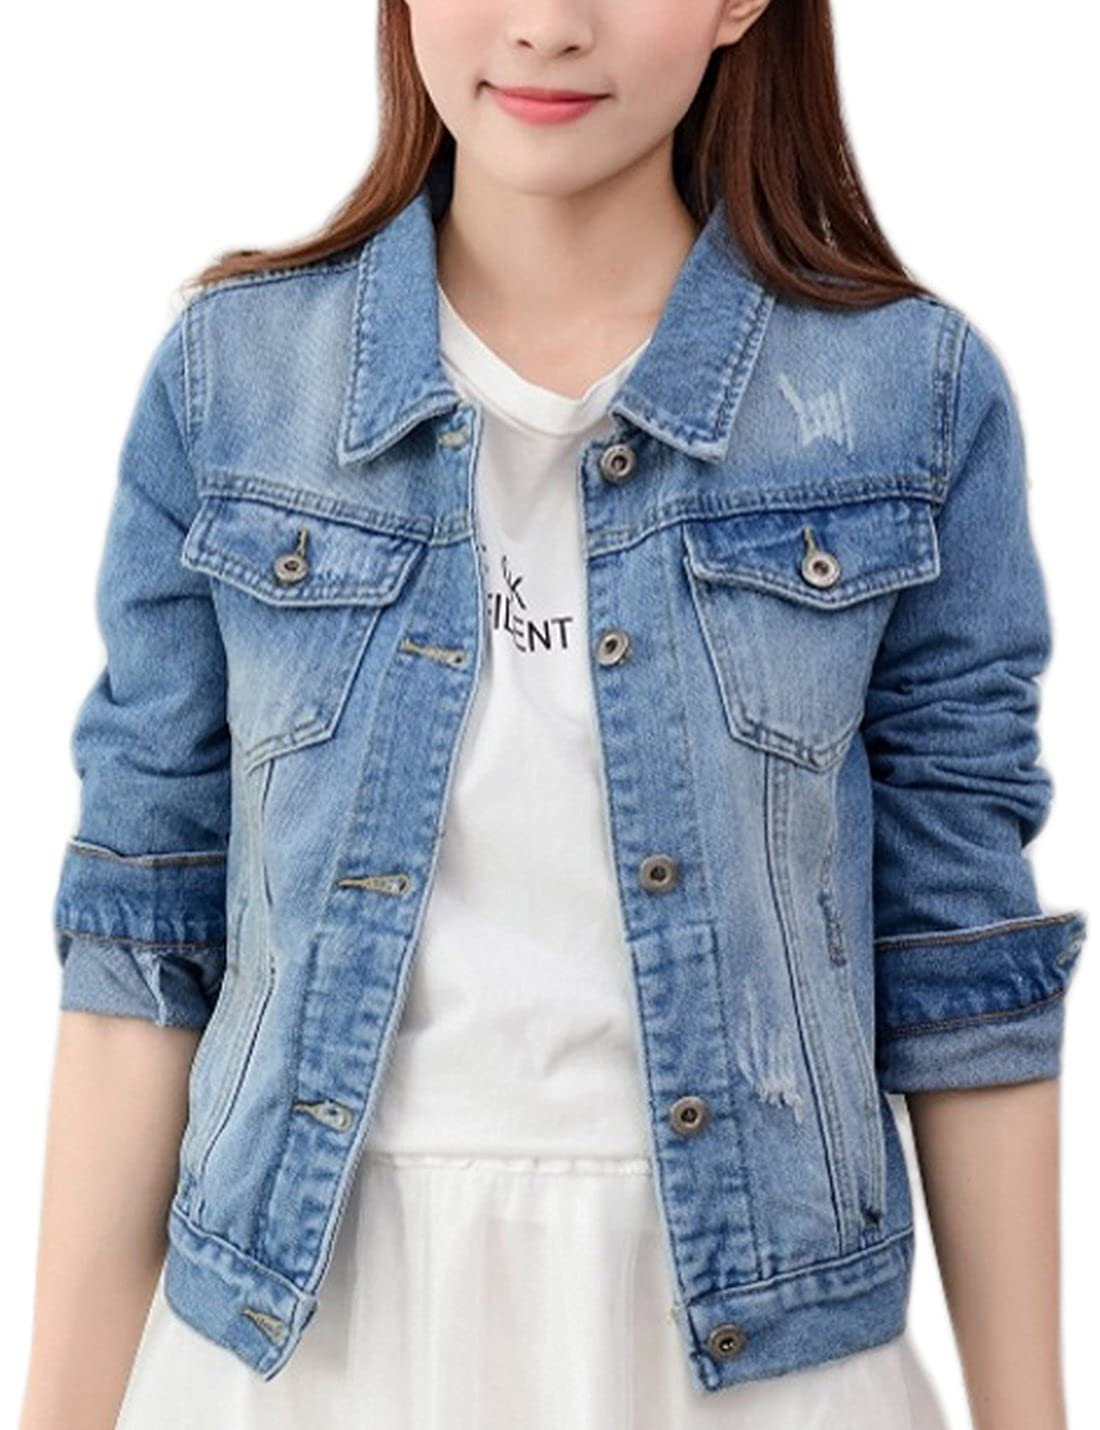 Yeokou Women's Casual Lapel Slim Jean Denim Short Jacket Coat